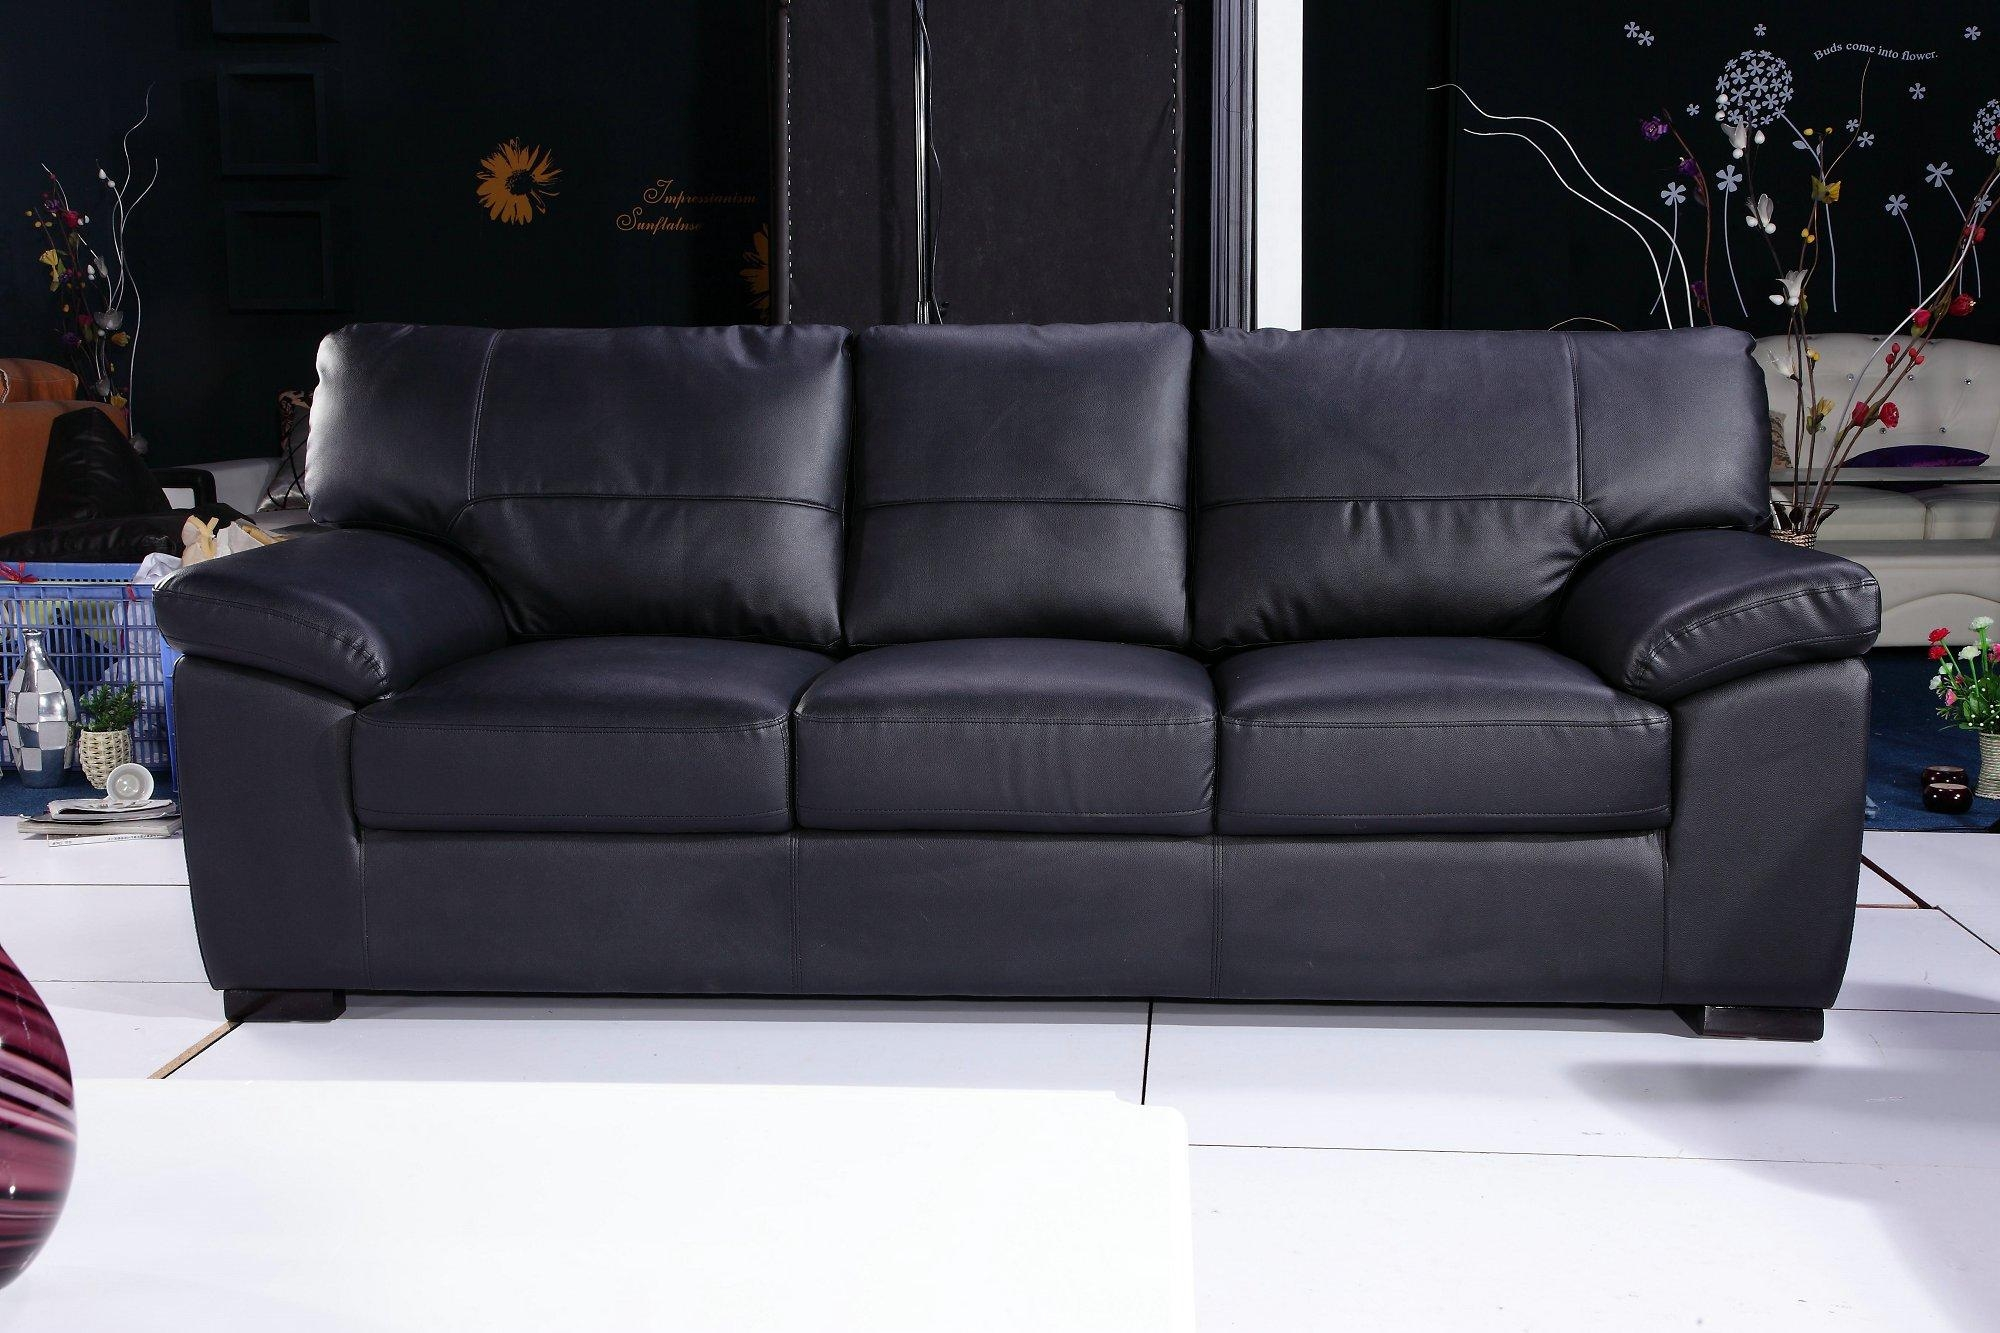 3 Seater Leather Sofas - Aftdth inside 3 Seater Leather Sofas